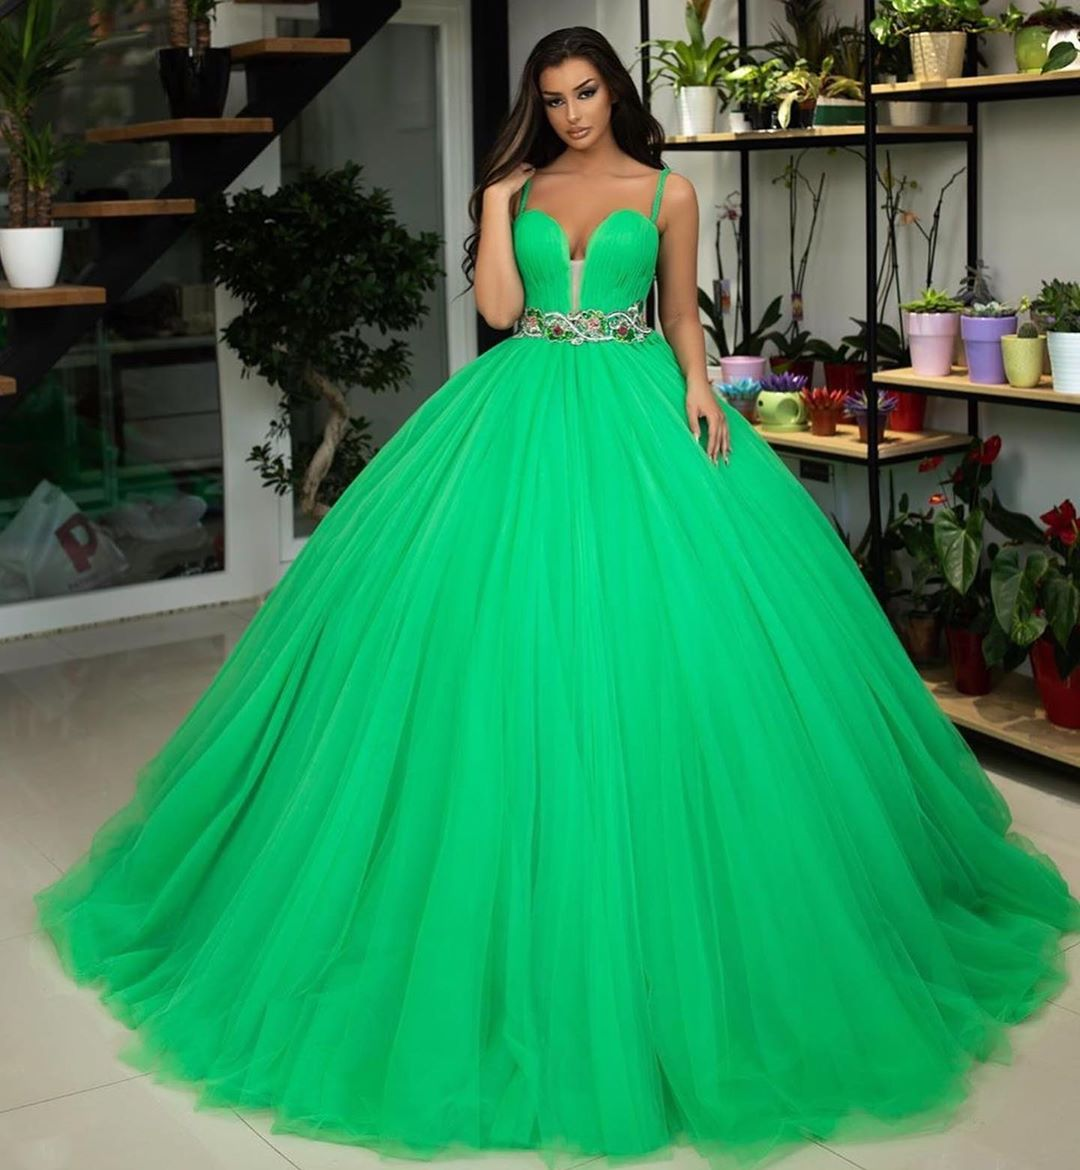 Green Ball Gown Quinceanera Dresses Sweetheart Spaghetti Straps Floor  Length Plus Size Formal Evening Dresses Long Party Gowns from loveu